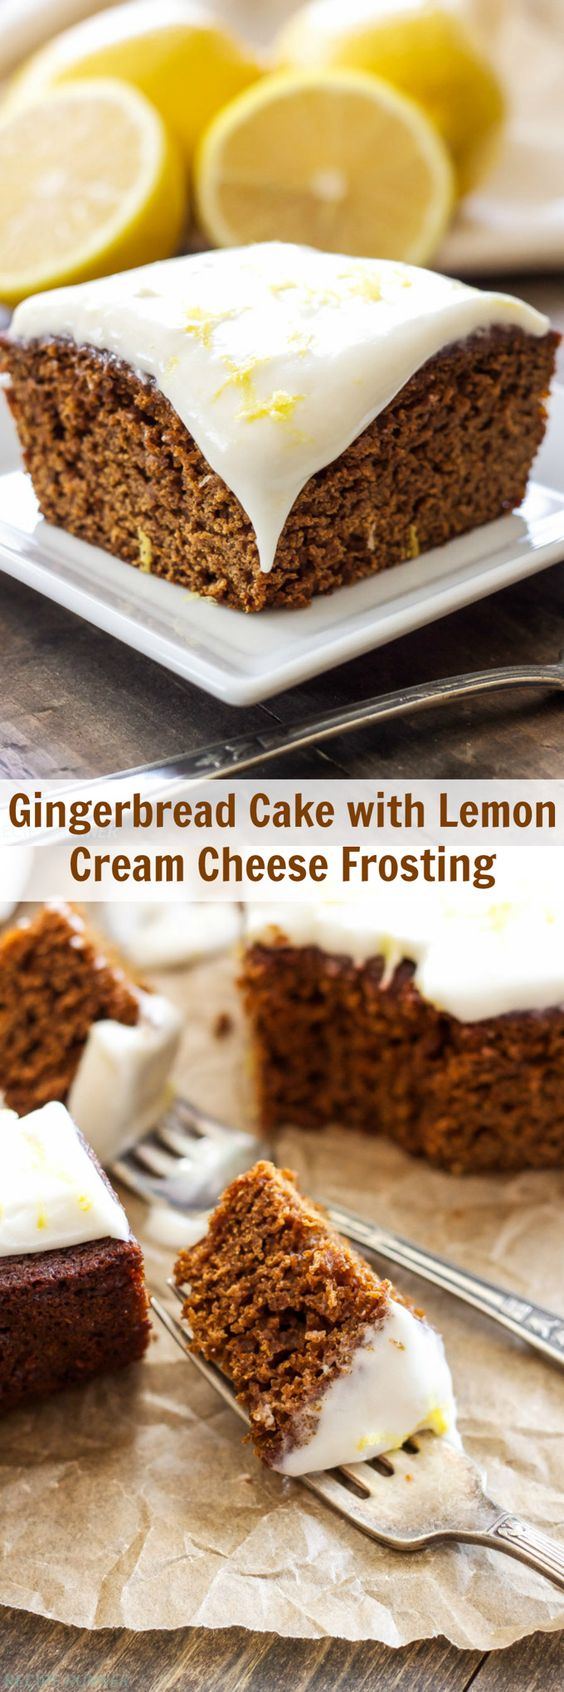 Gingerbread Cake with Lemon Cream Cheese Frosting | Gingerbread and ...